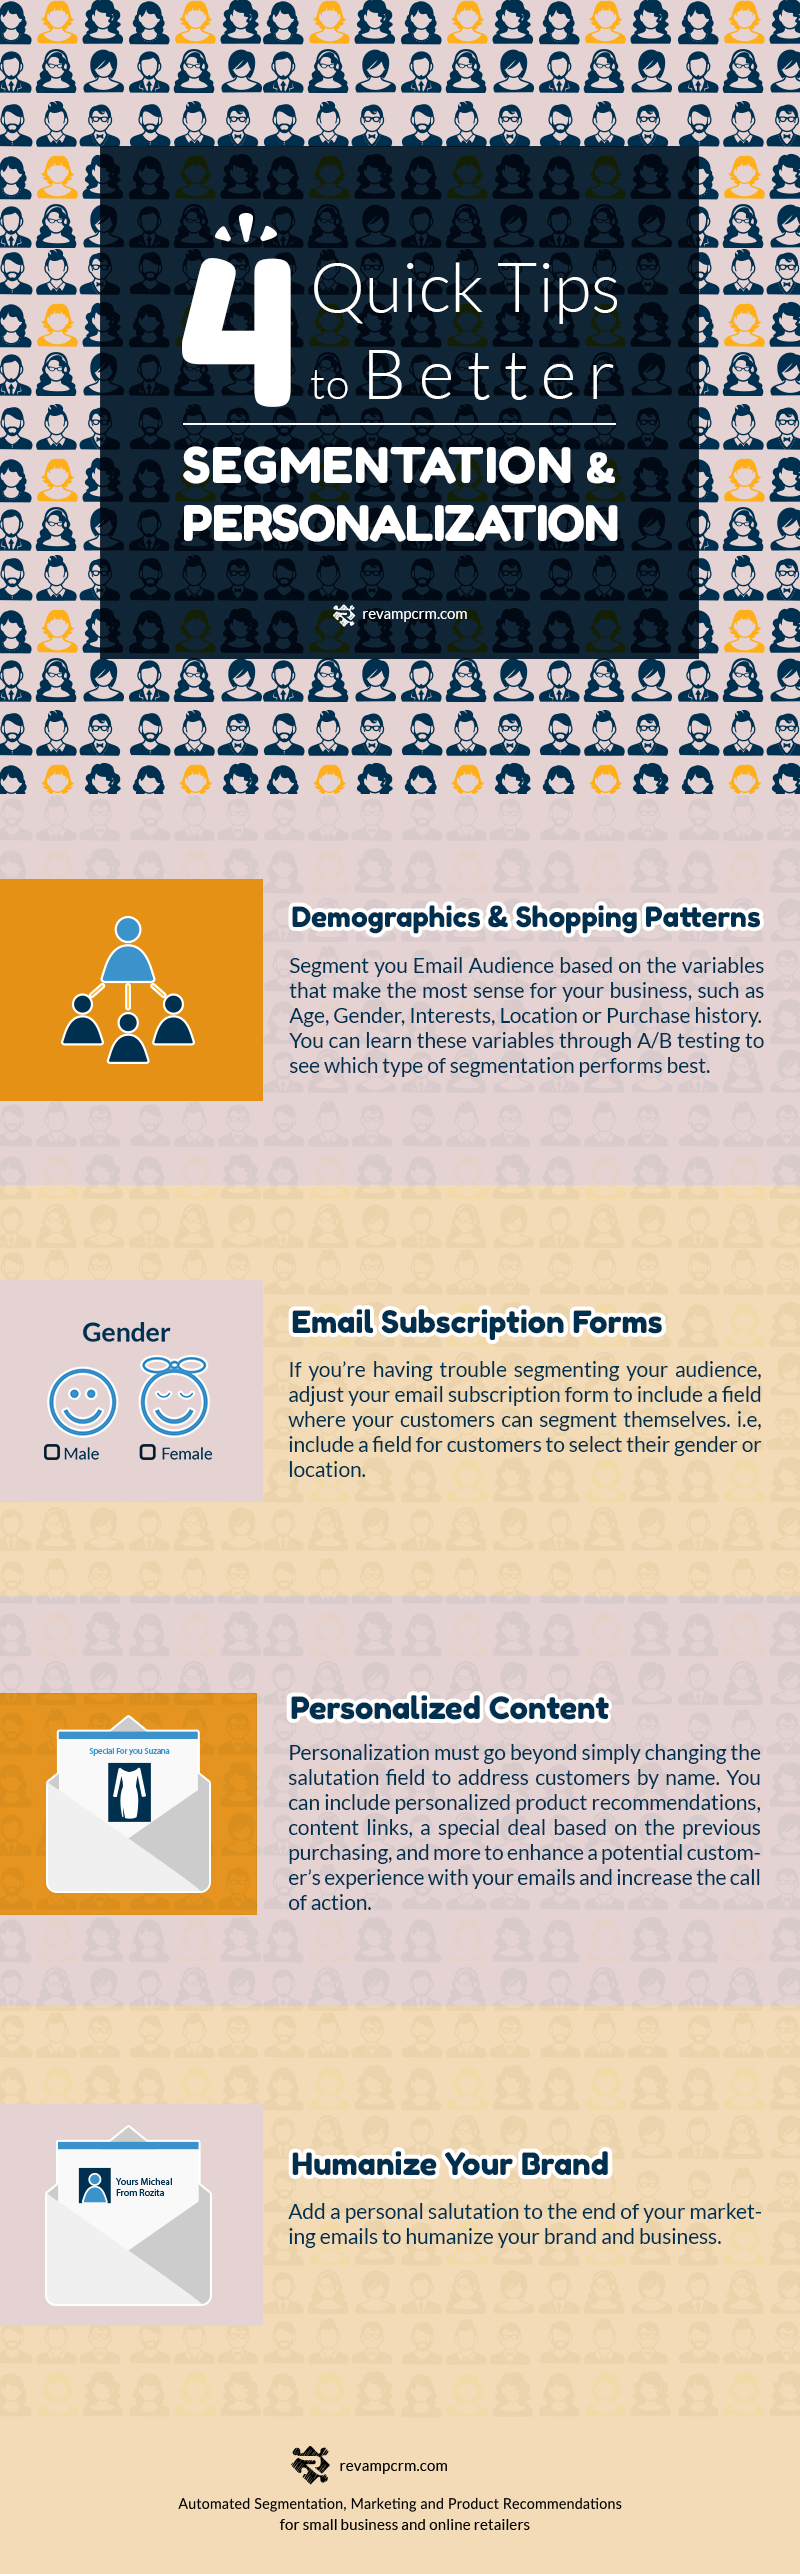 4 Quick Tips To Better Segmentation & Personalization